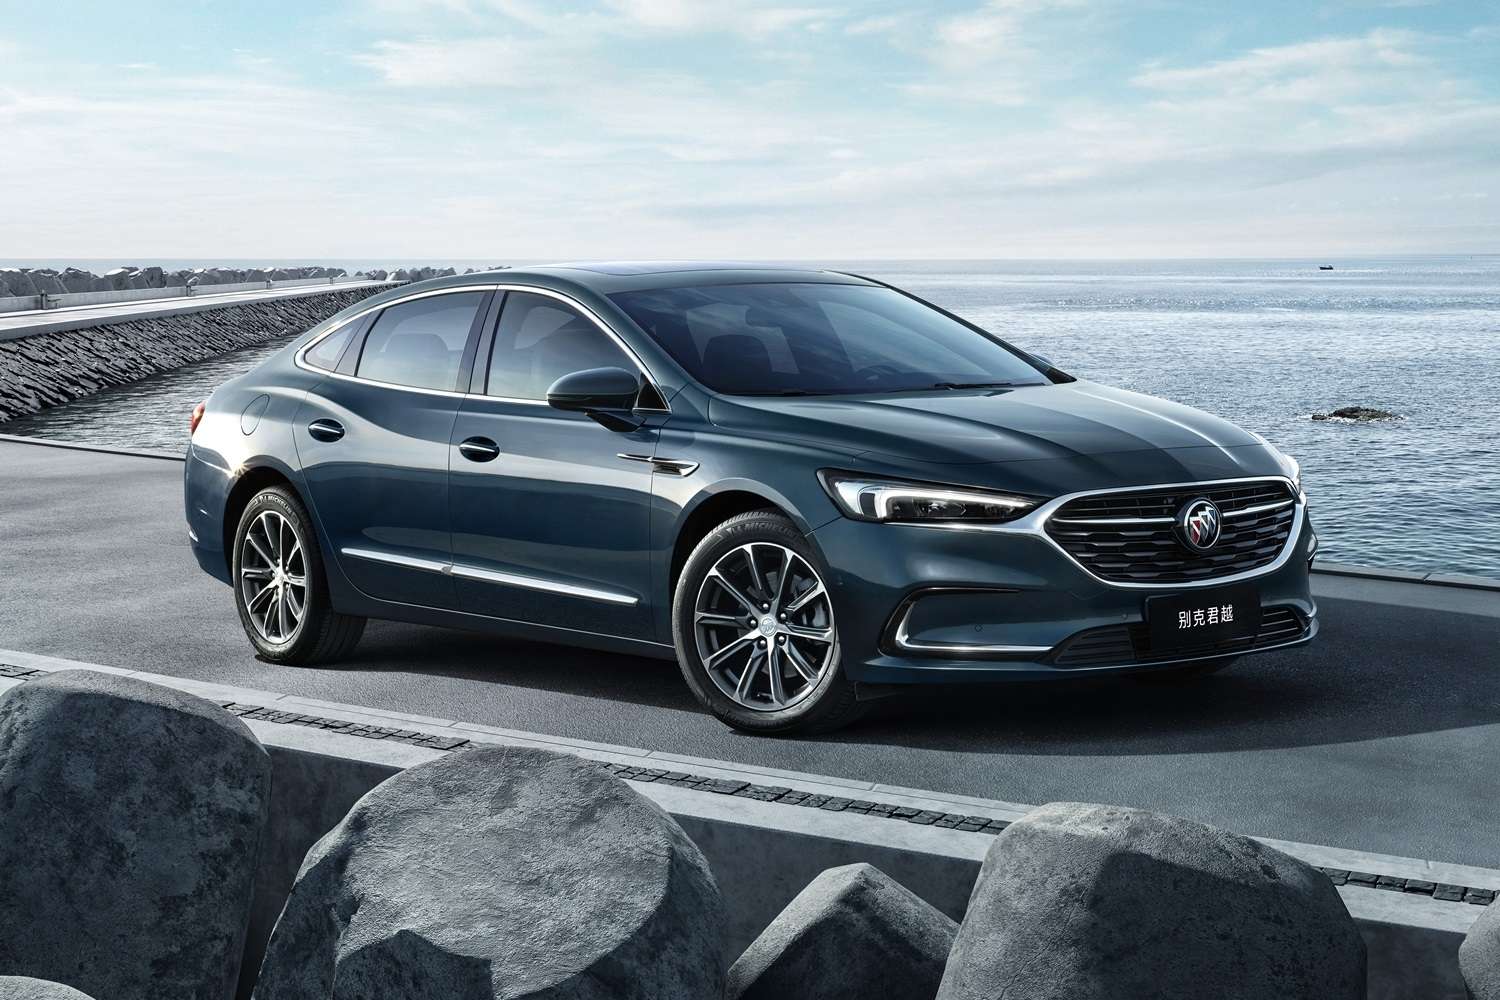 2021 Buick Lacrosse Gets More Refined Than Ever | Gm Authority 2021 Buick Lucerne Price, Engine, Oil